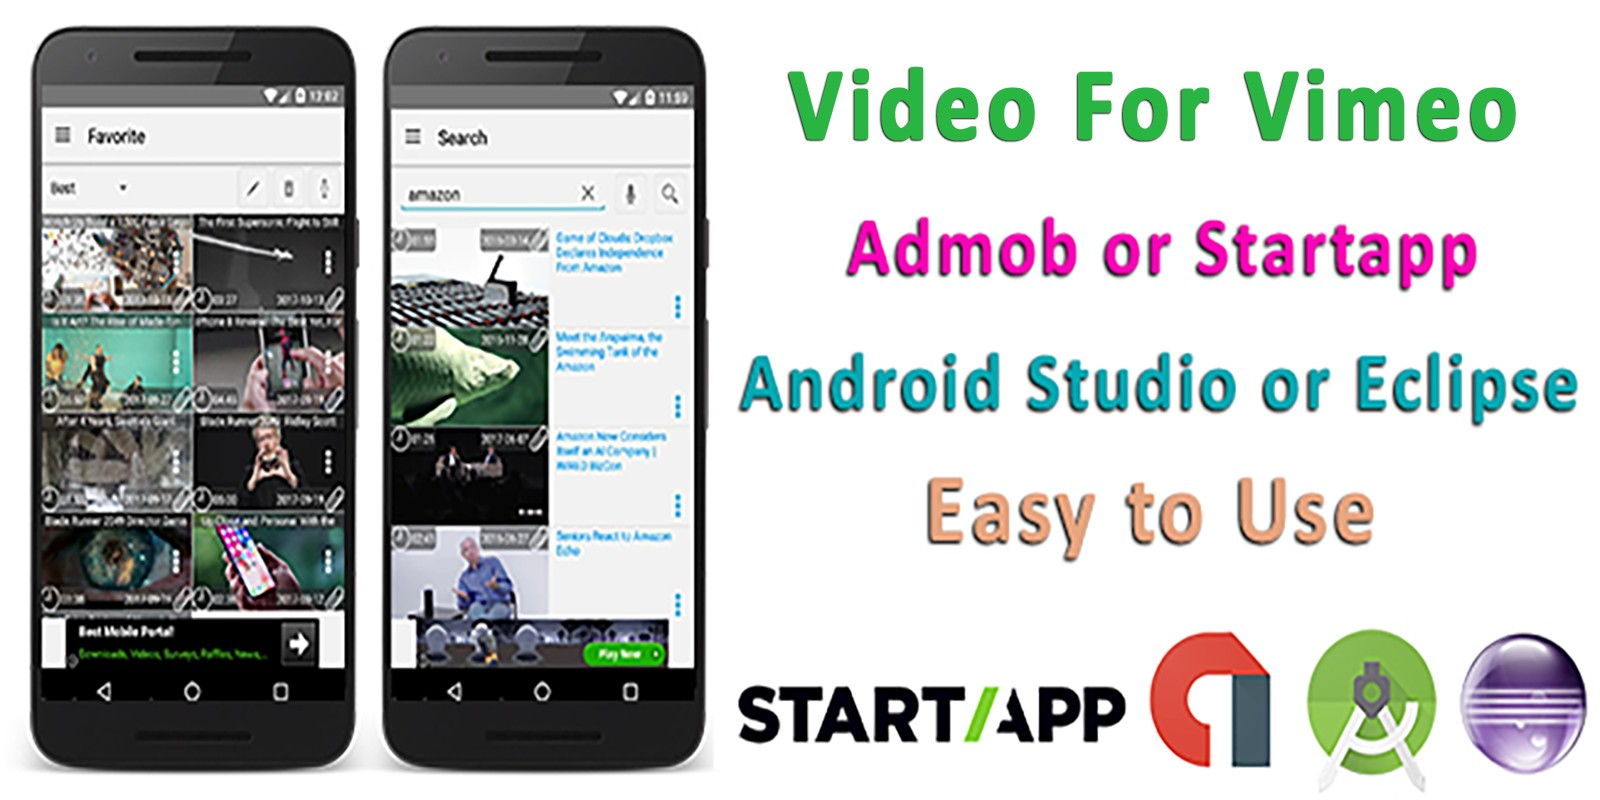 Vimeo Video Player - Android Source Code